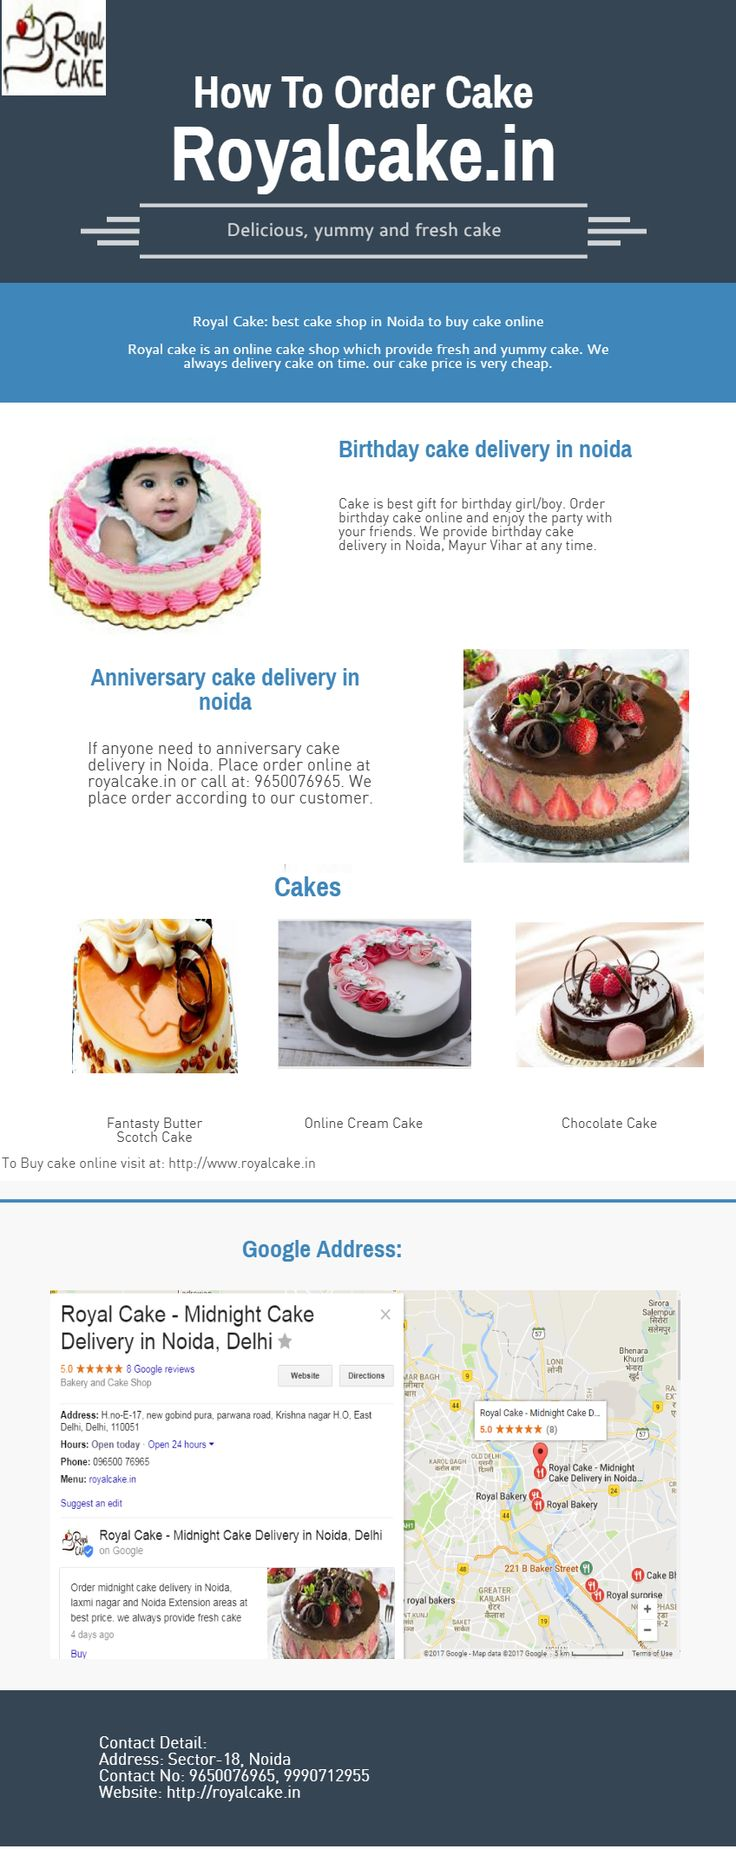 Royal cake is best place to choose online anniversary cake delivery in Noida. Write name of your friends, relatives and dear ones on anniversary cakes online. We have something special deigns and taste is also yummy. Hope you will love this anniversary.  For more info visit at: http://royalcake.in/product-category/online-anniversary-cake-home-delivery/